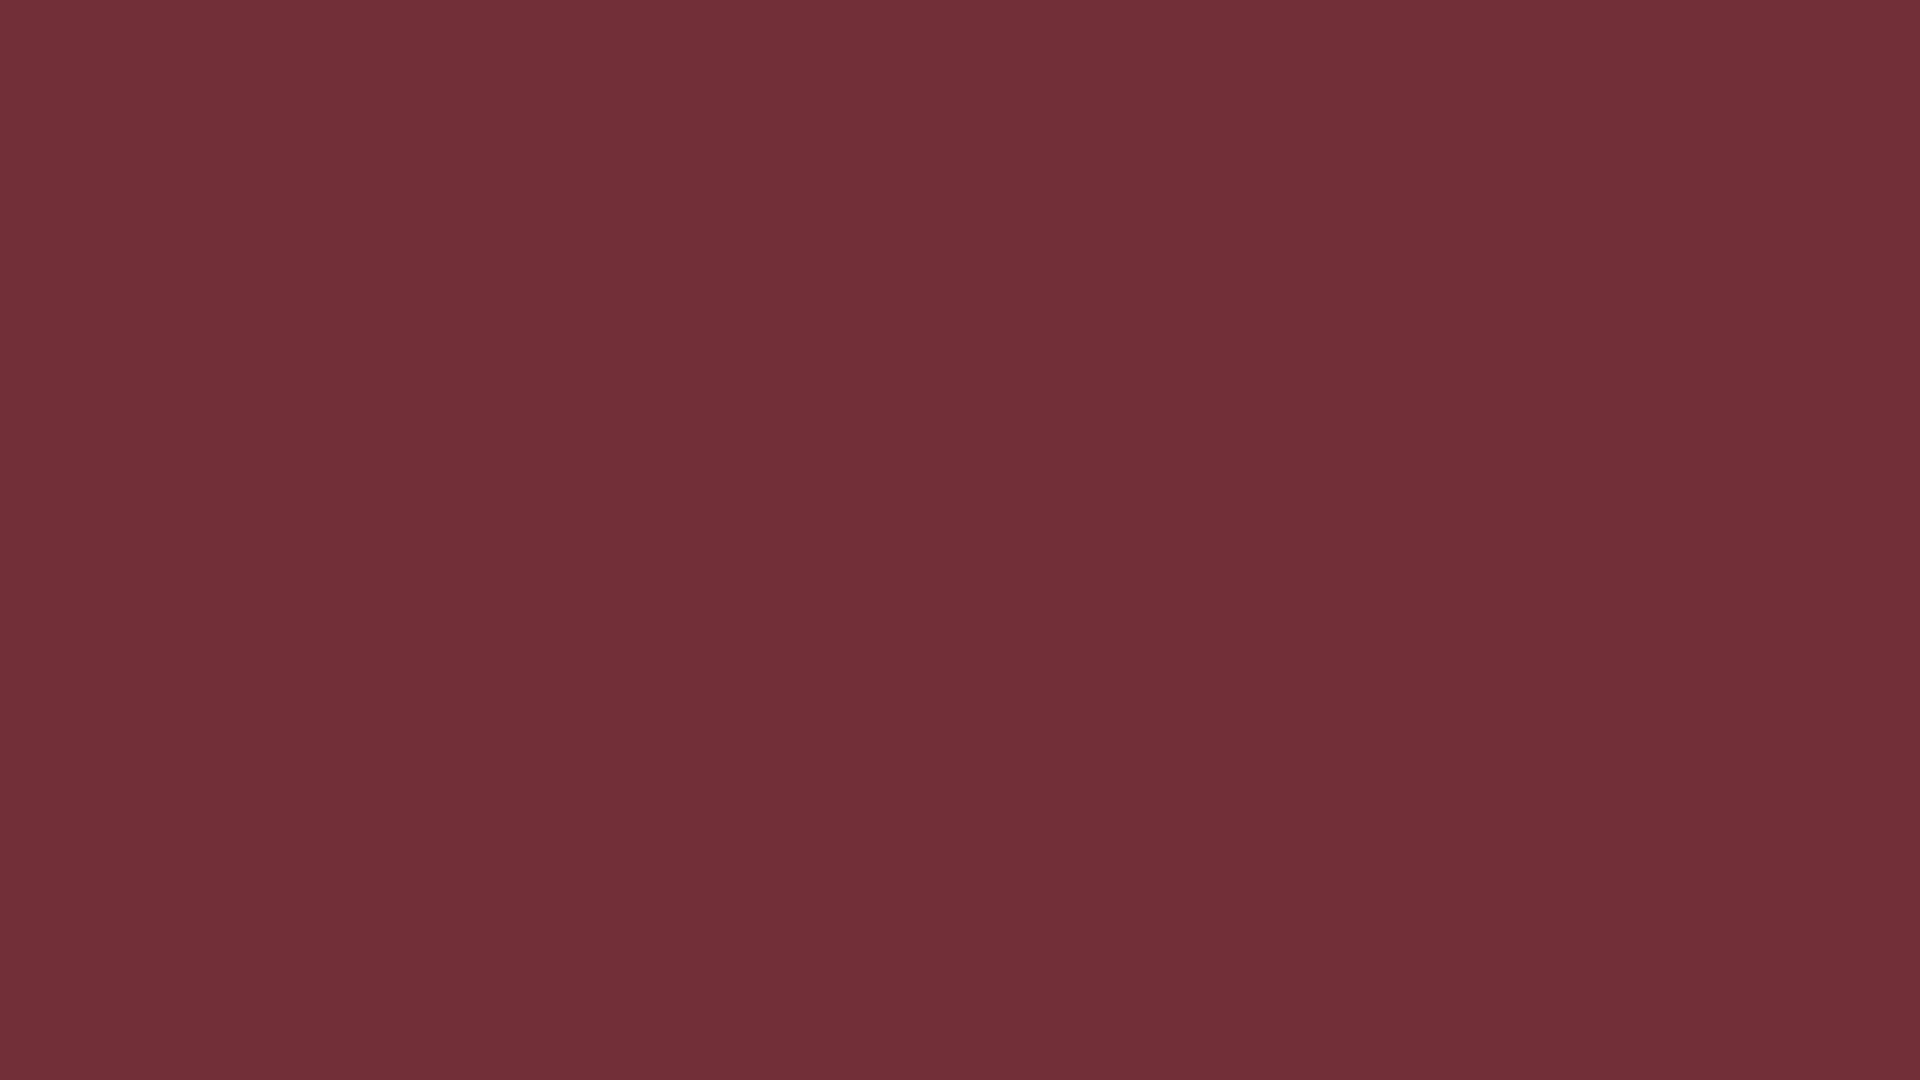 1920x1080 Wine Solid Color Background 1920x1080